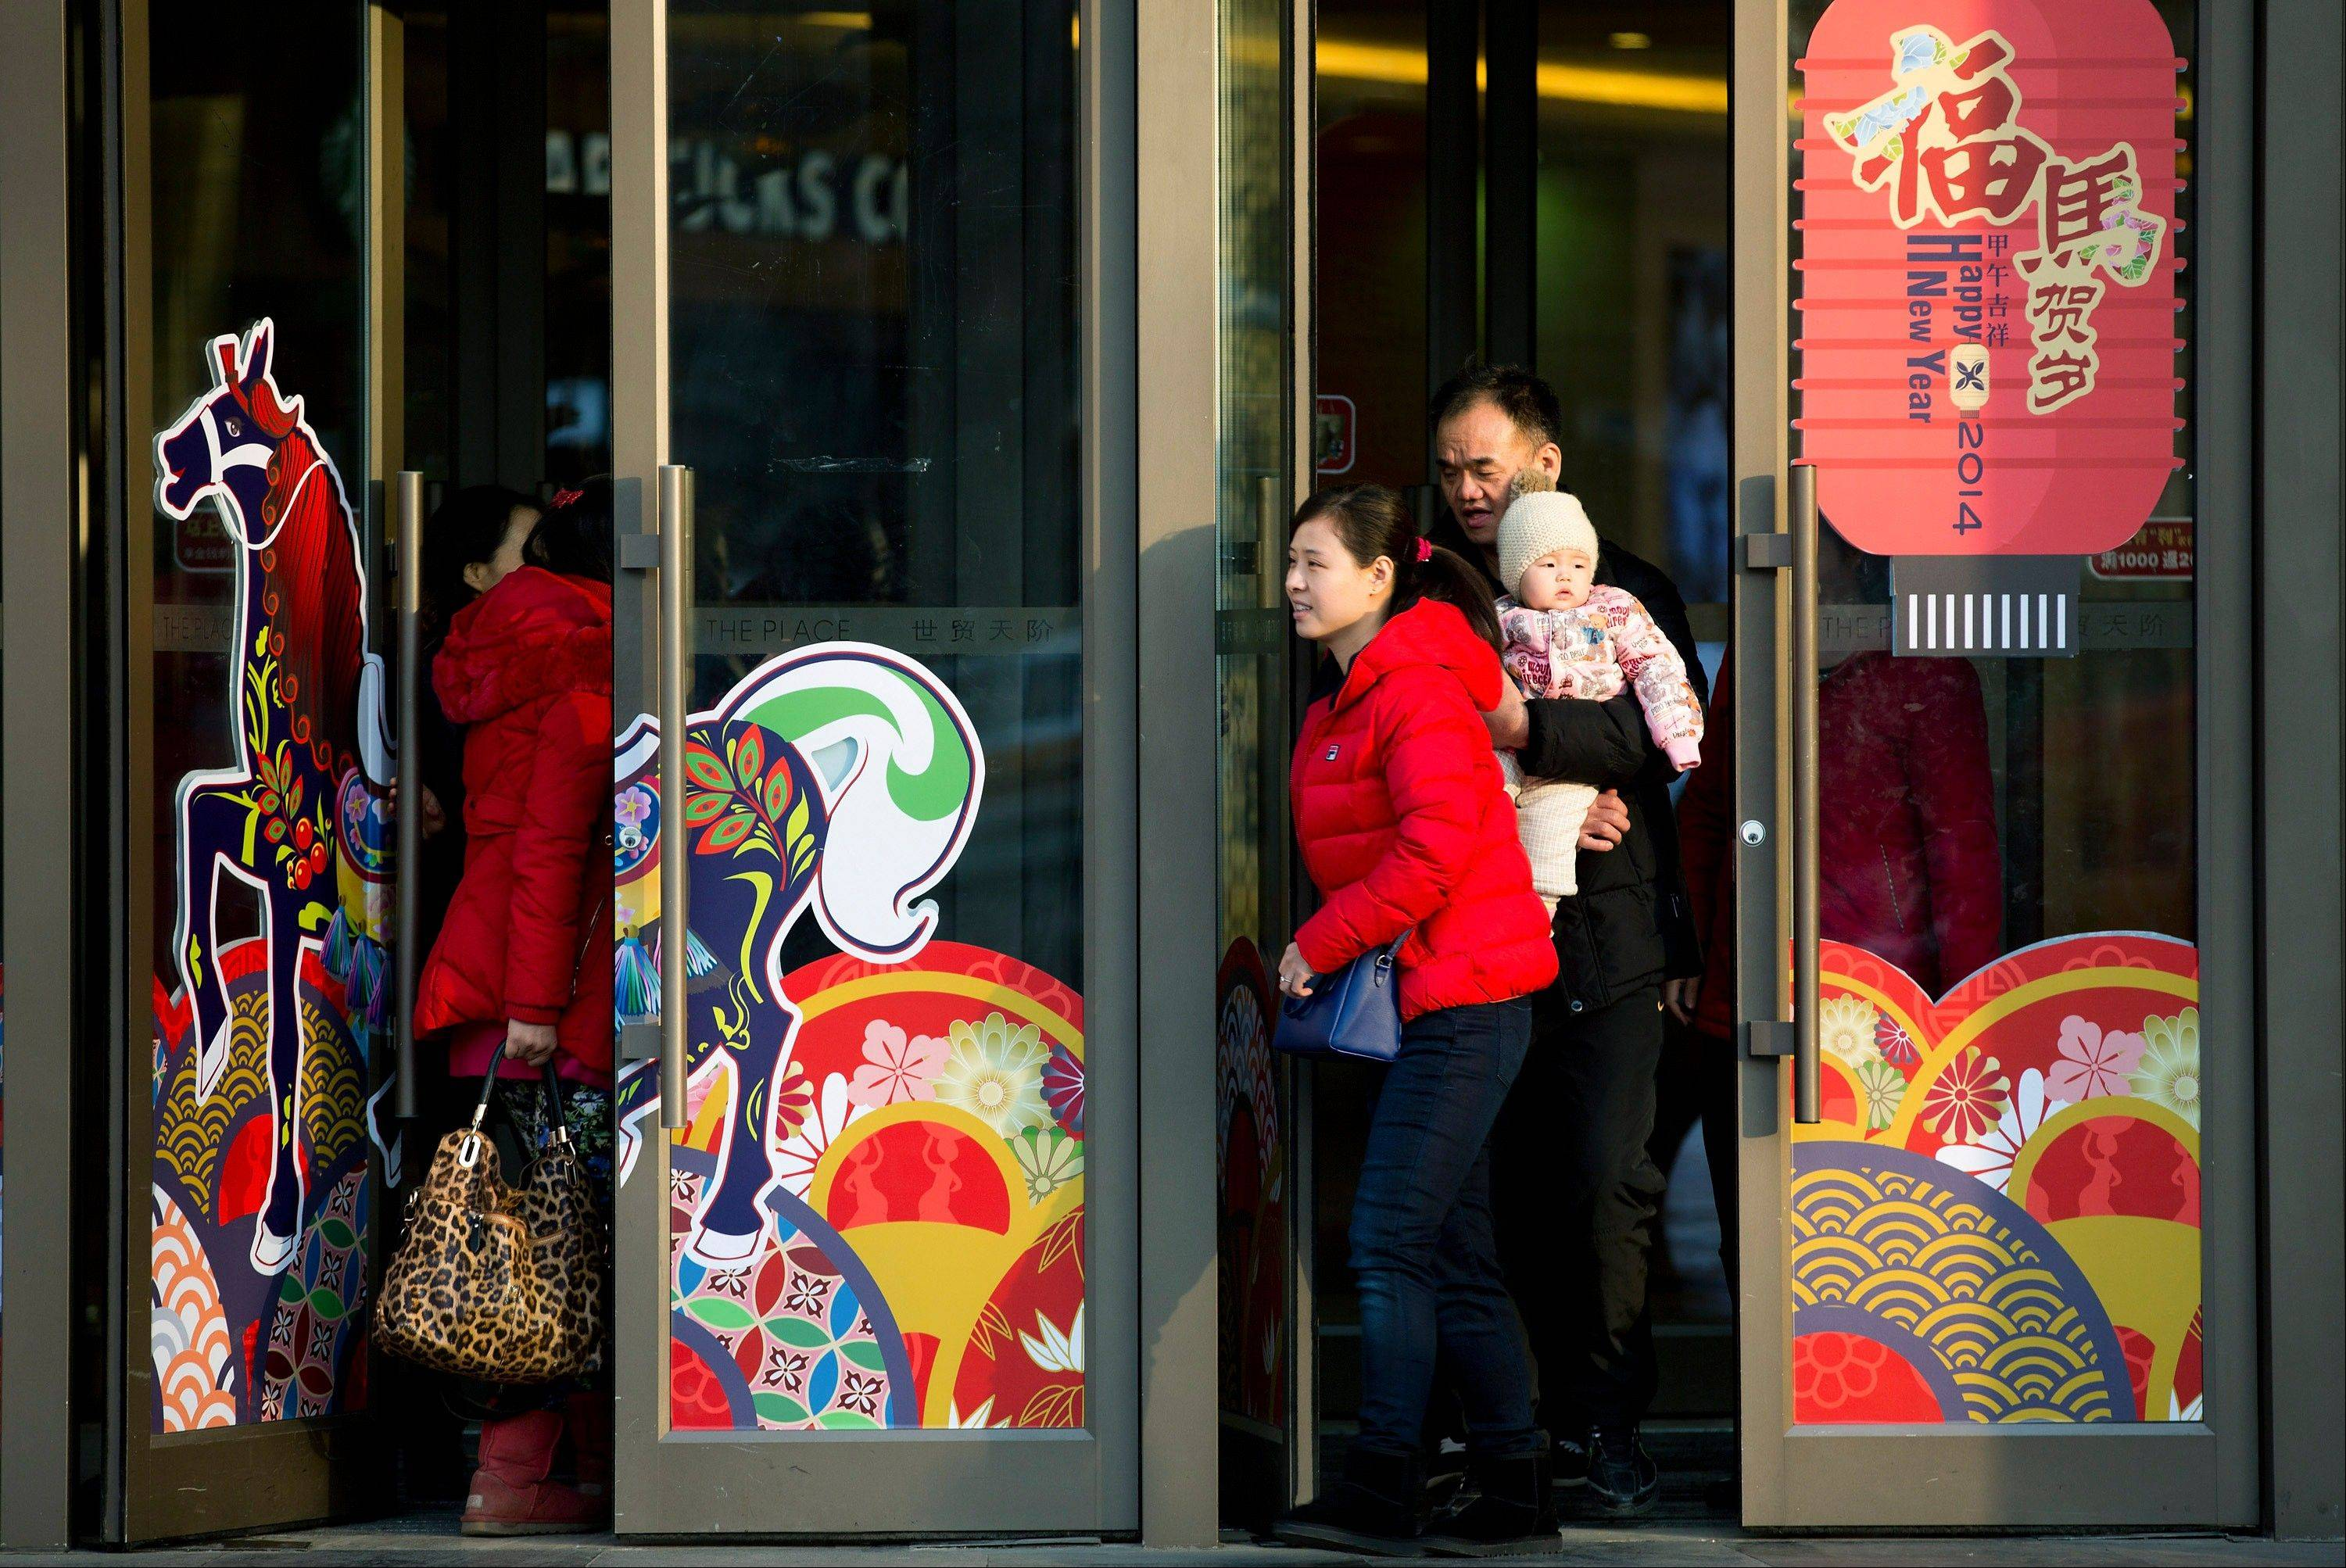 Chinese shoppers walk through entrance doors decorated for the upcoming Chinese Lunar New Year at a shopping mall in Beijing Wednesday. The global economy is slowly picking up steam, led by advanced economies appearing to turn the corner after five years of financial crises and recession and a continued good performance by China, the World Bank said.